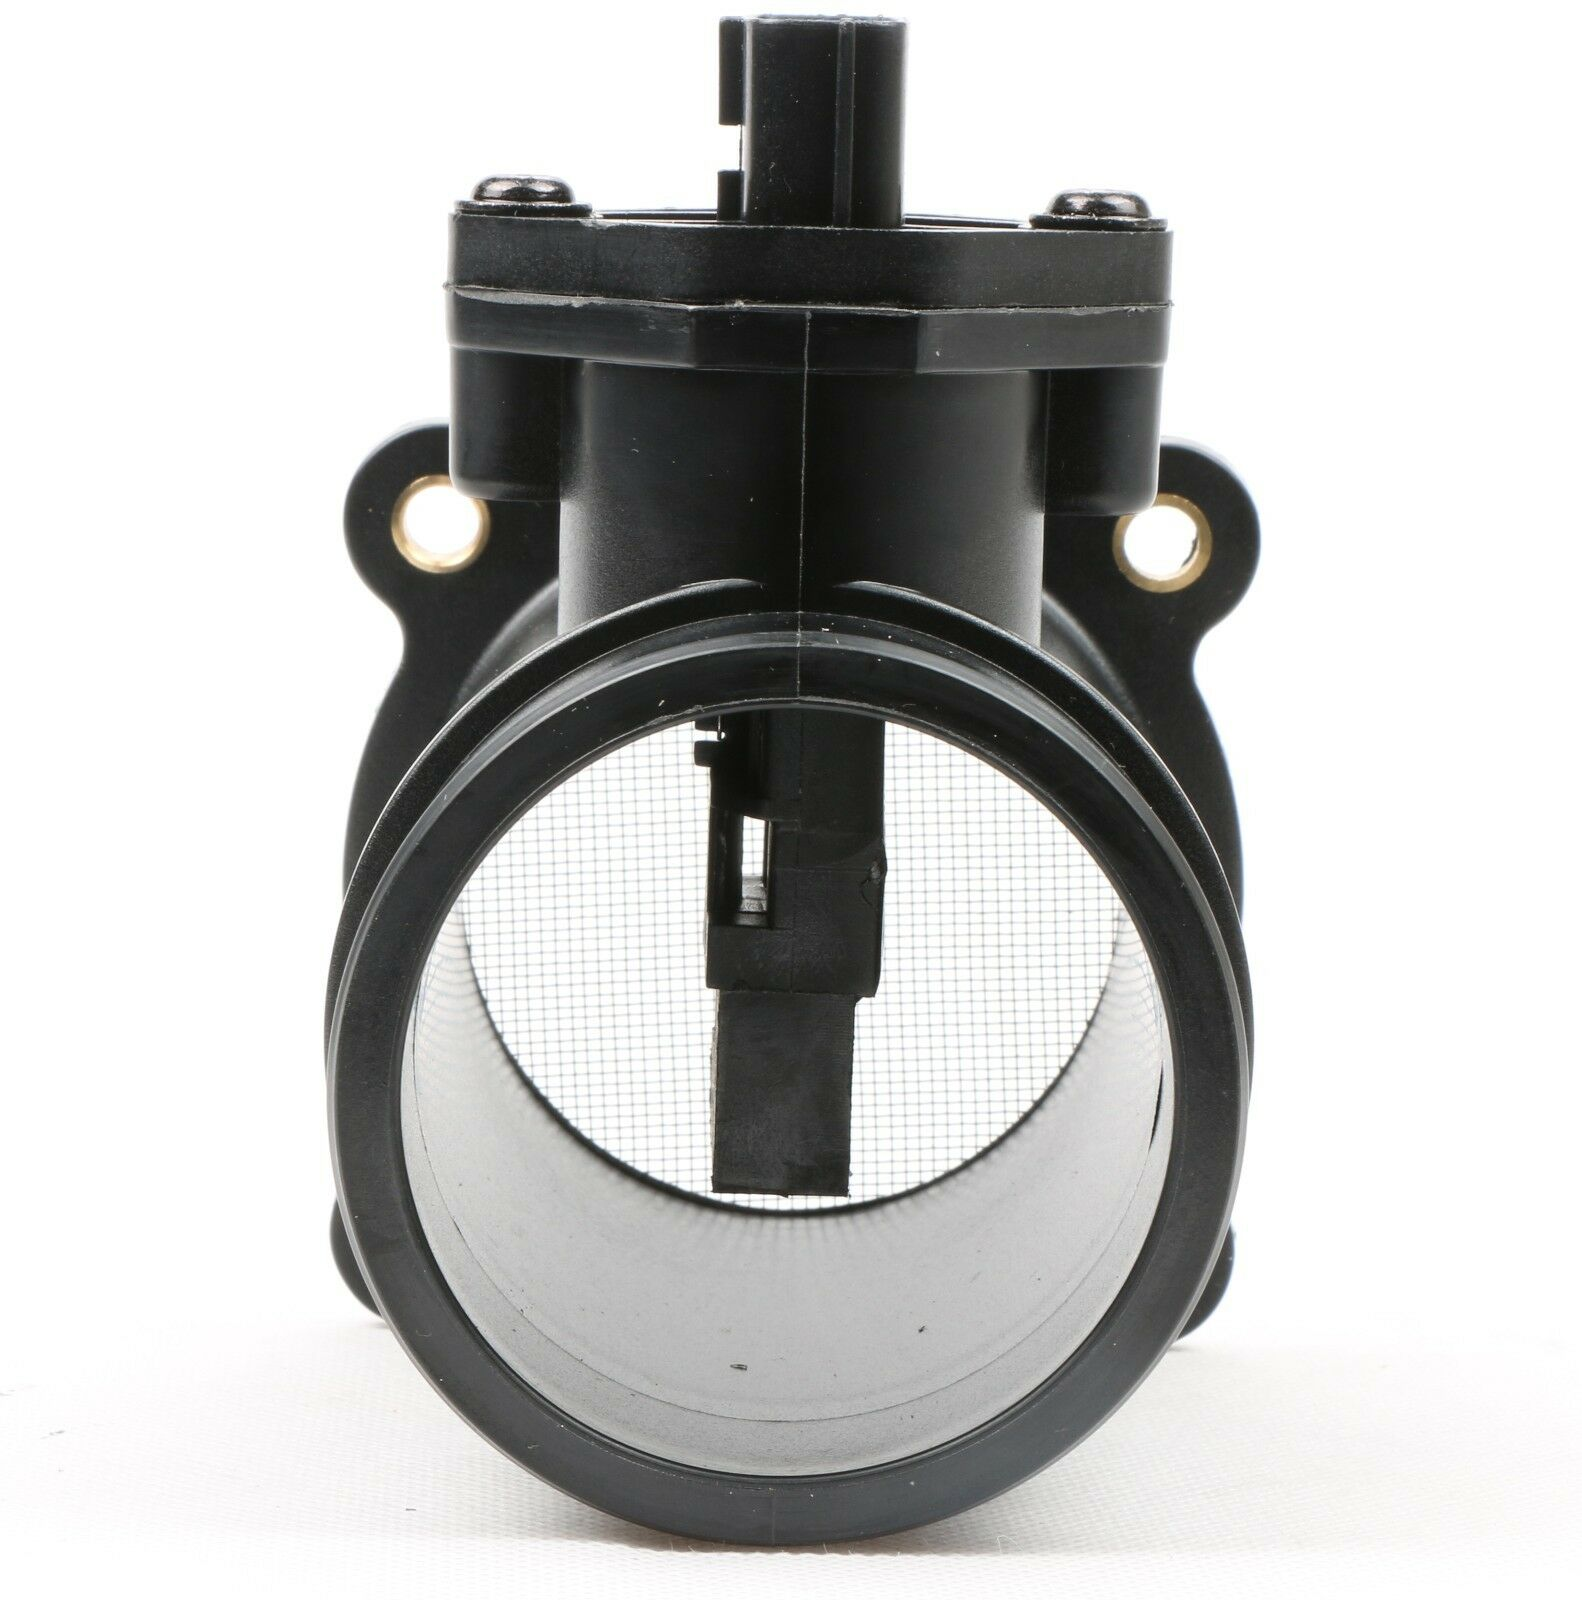 New Mass Air Flow Sensor Meter Maf Fit 00 02 Nissan Sentra 18l 2014 Location For Replaces 22680 5m000